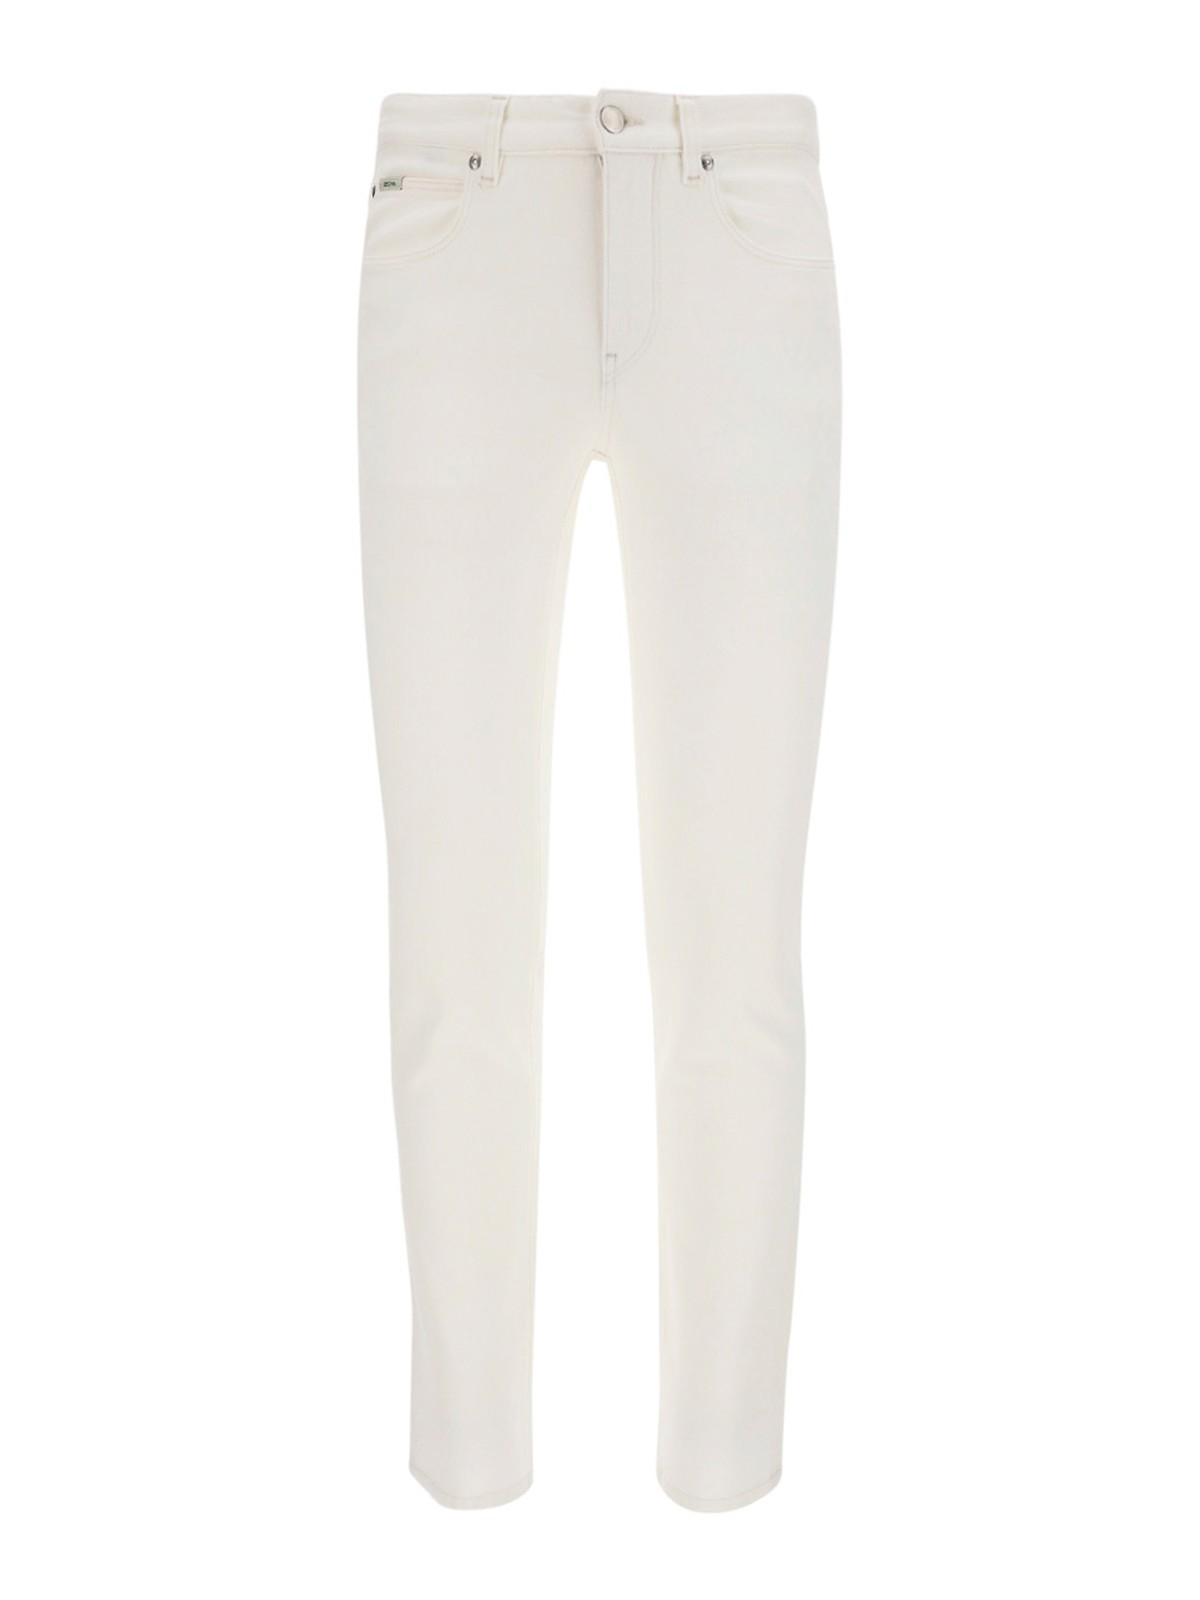 Z Zegna STRETCH COTTON TROUSERS